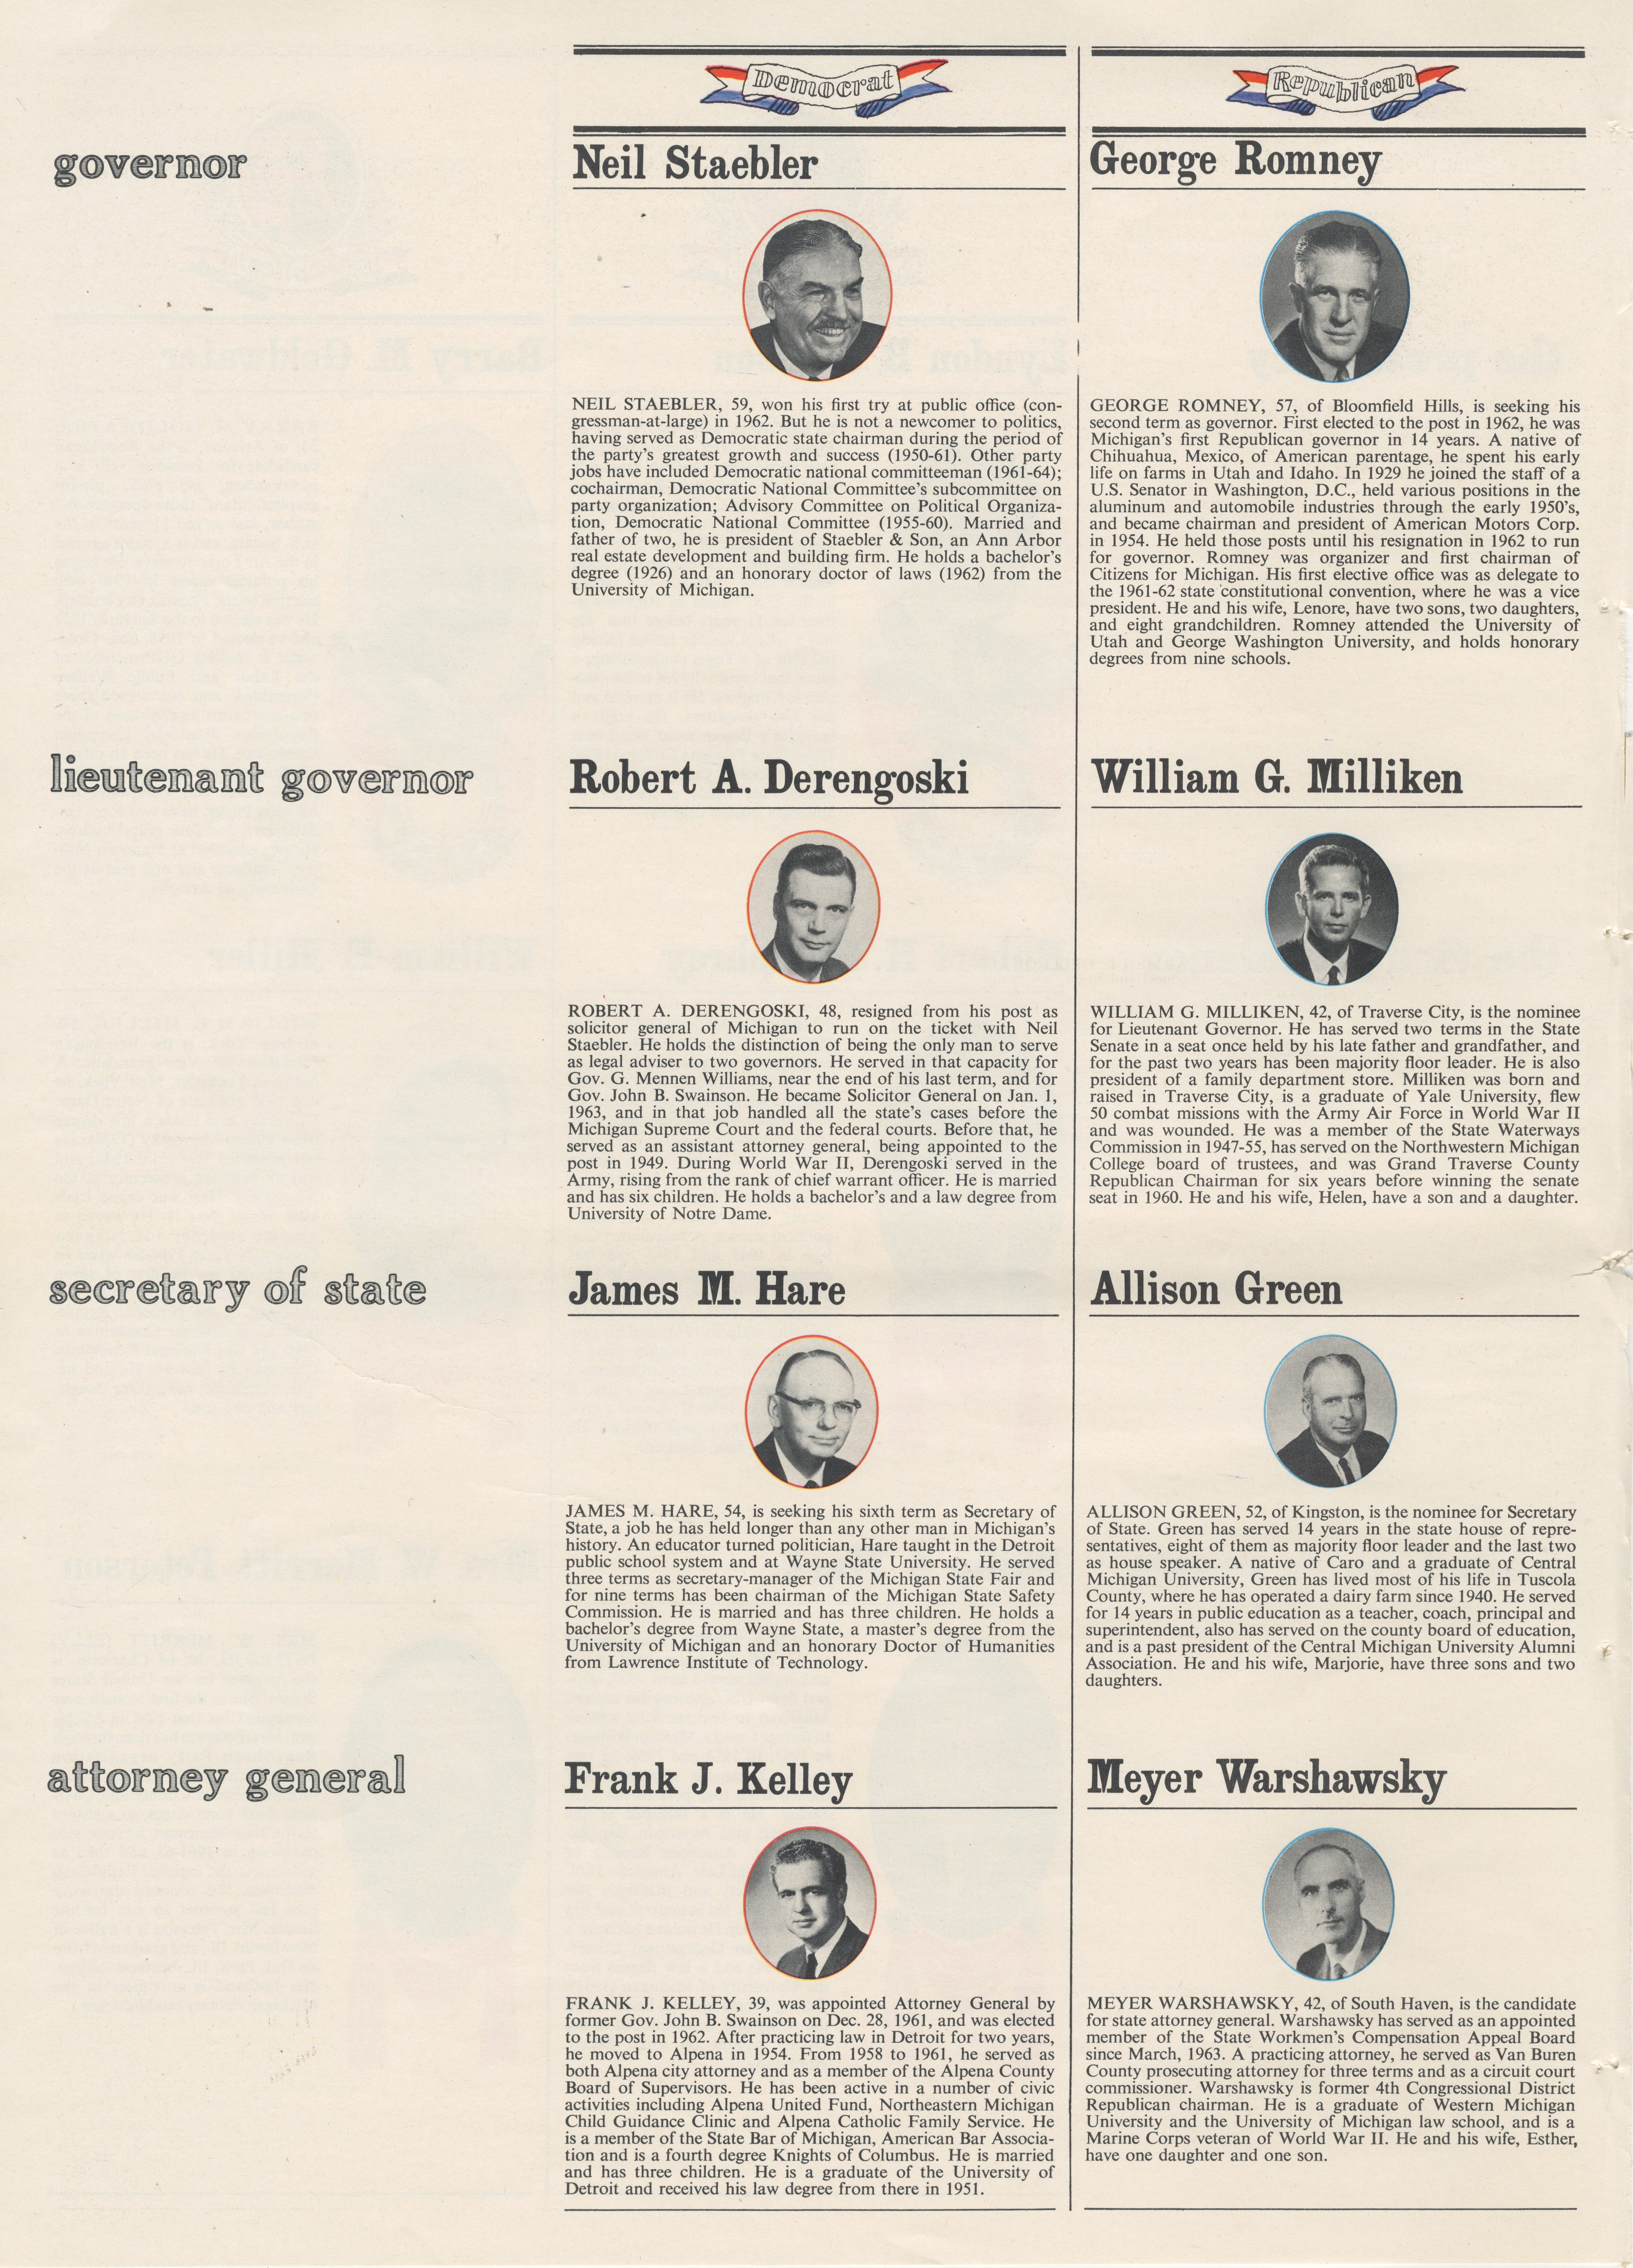 What You Should Know To Make Your Vote Count In 1964 ~ Governor, Lieutenant Governor, Secretary of State, Attorney General image